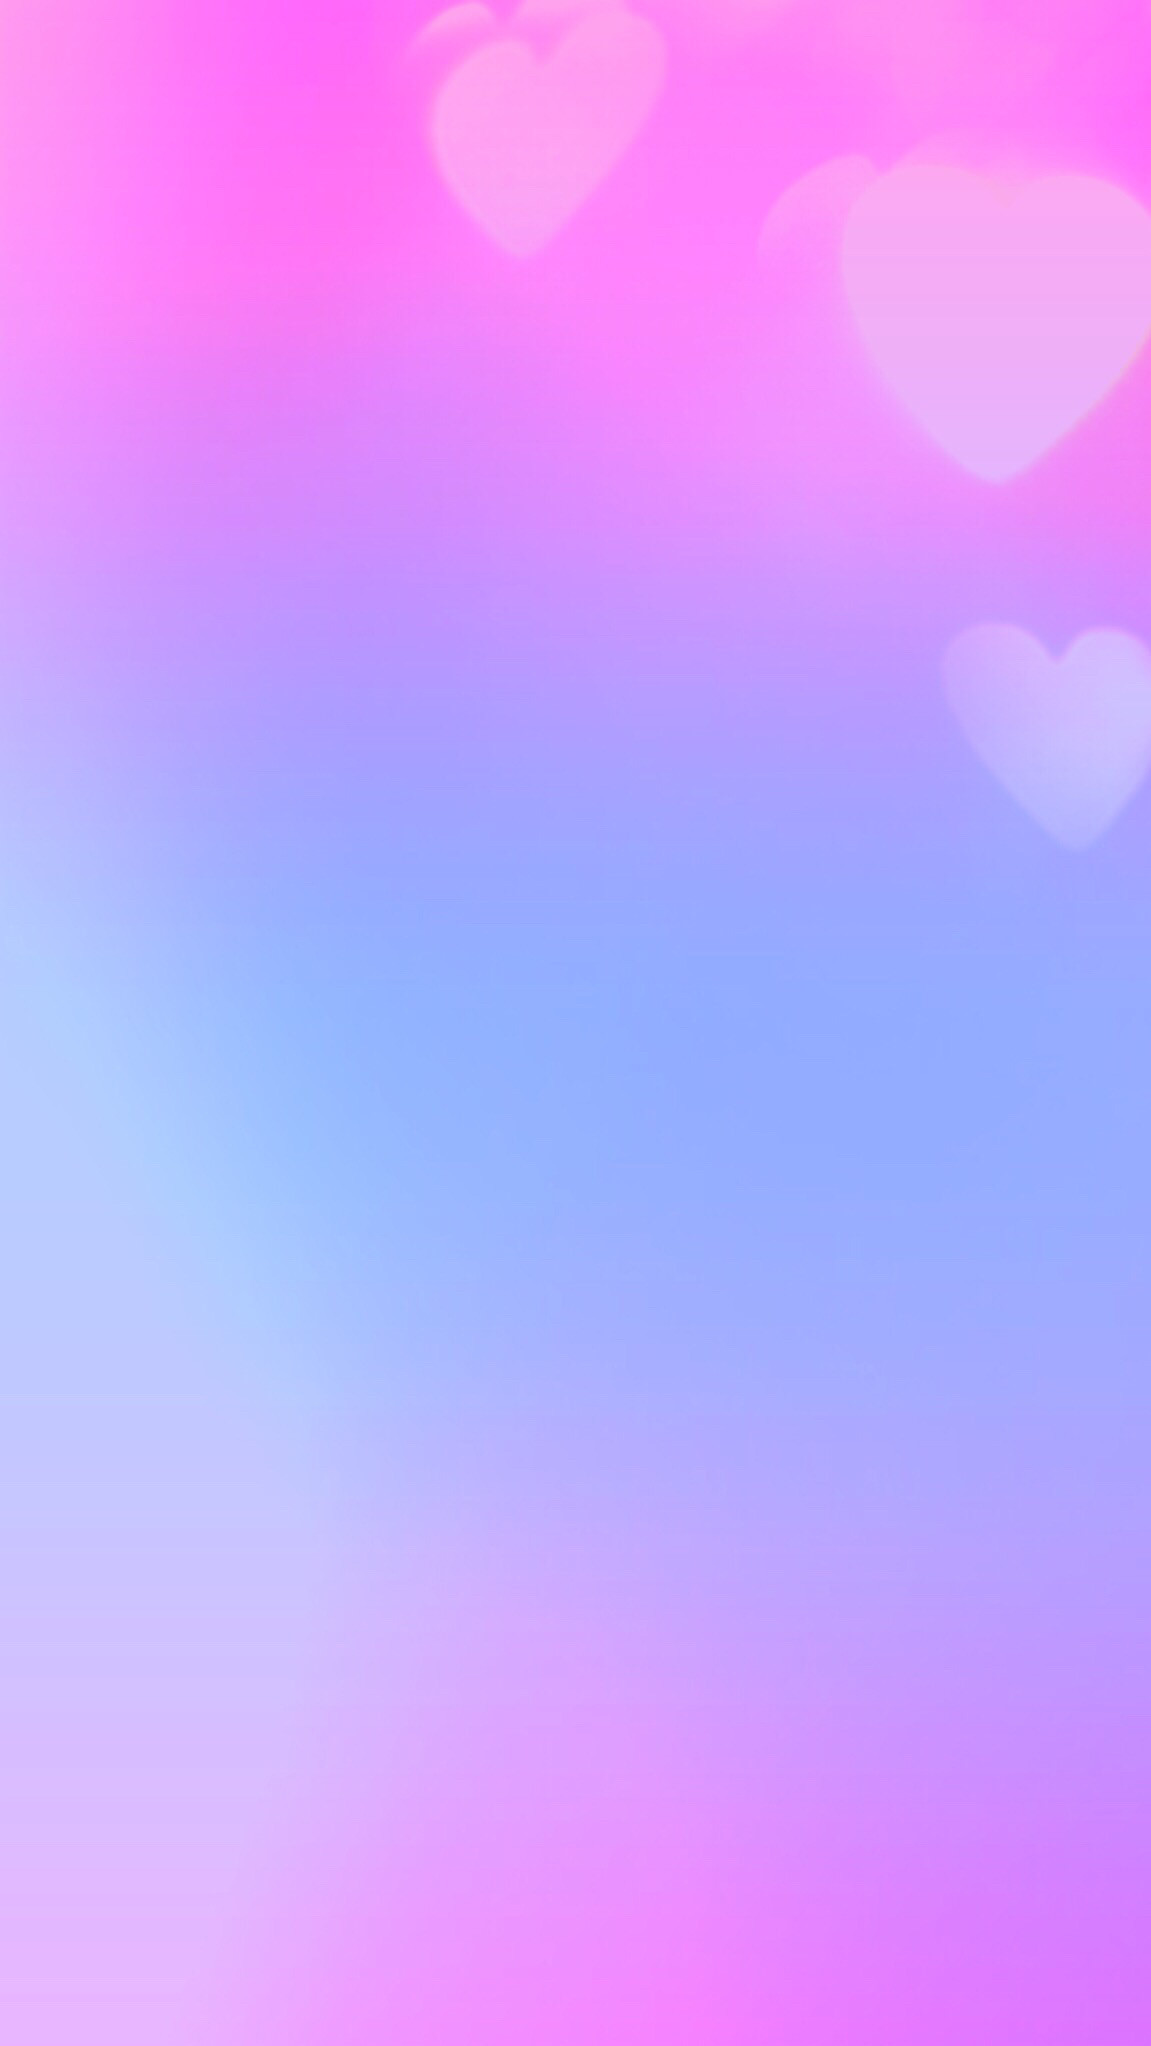 1151x2046 heart, wallpaper, ombre, gradient, iPhone, background, android, pink,